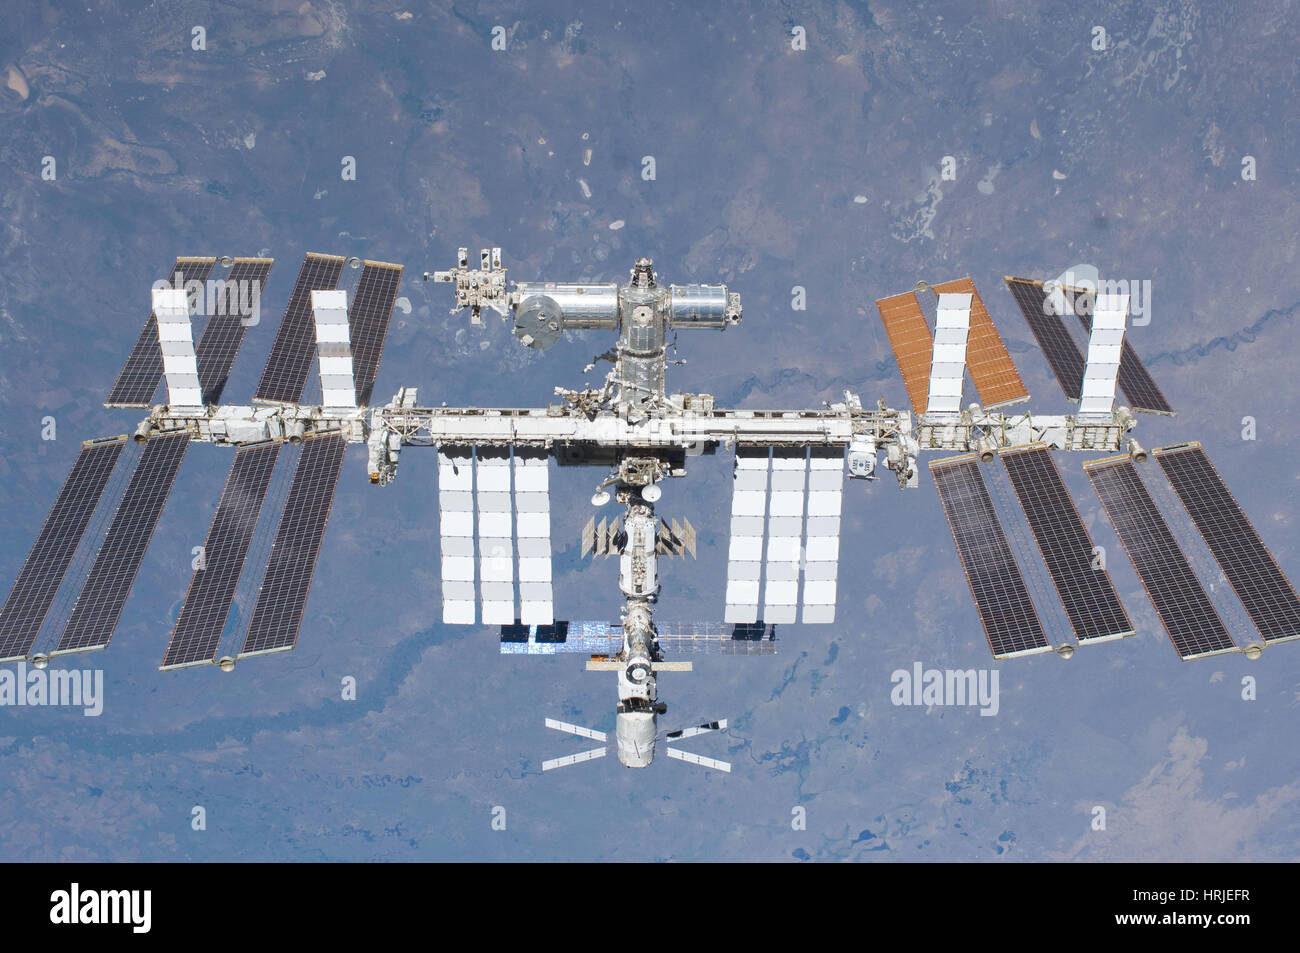 STS-134, International Space Station, 2011 - Stock Image